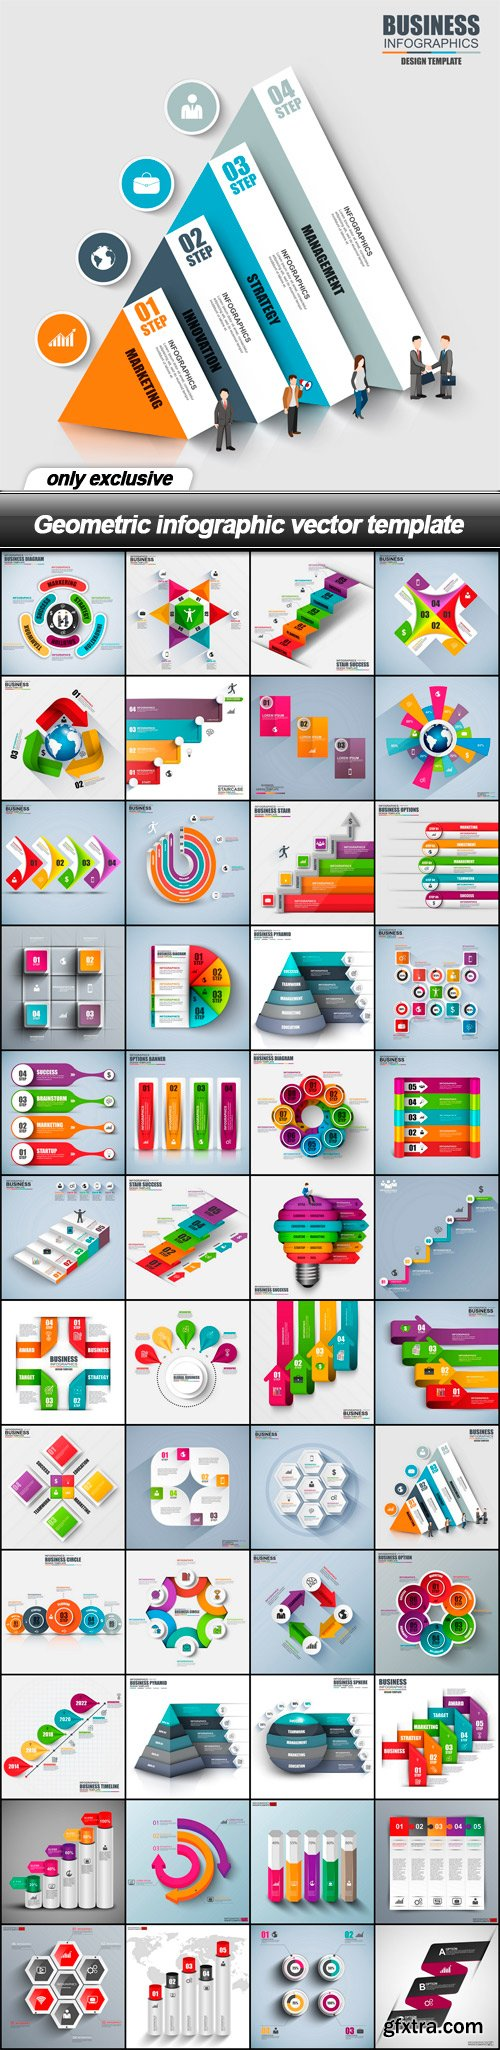 Geometric infographic vector template - 48 EPS